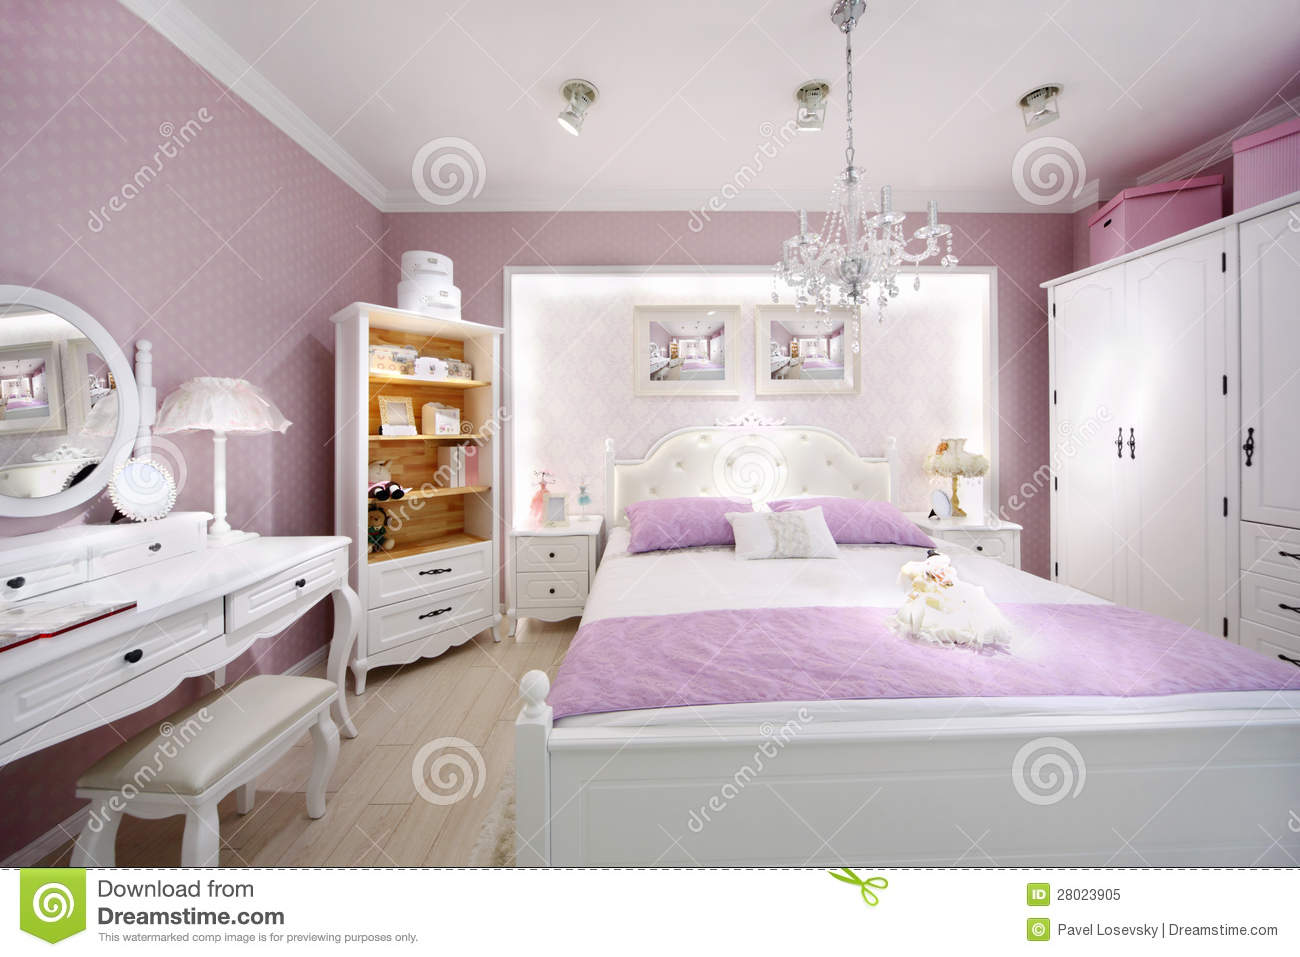 chambre coucher rose l gante pour le femme image stock image 28023905. Black Bedroom Furniture Sets. Home Design Ideas